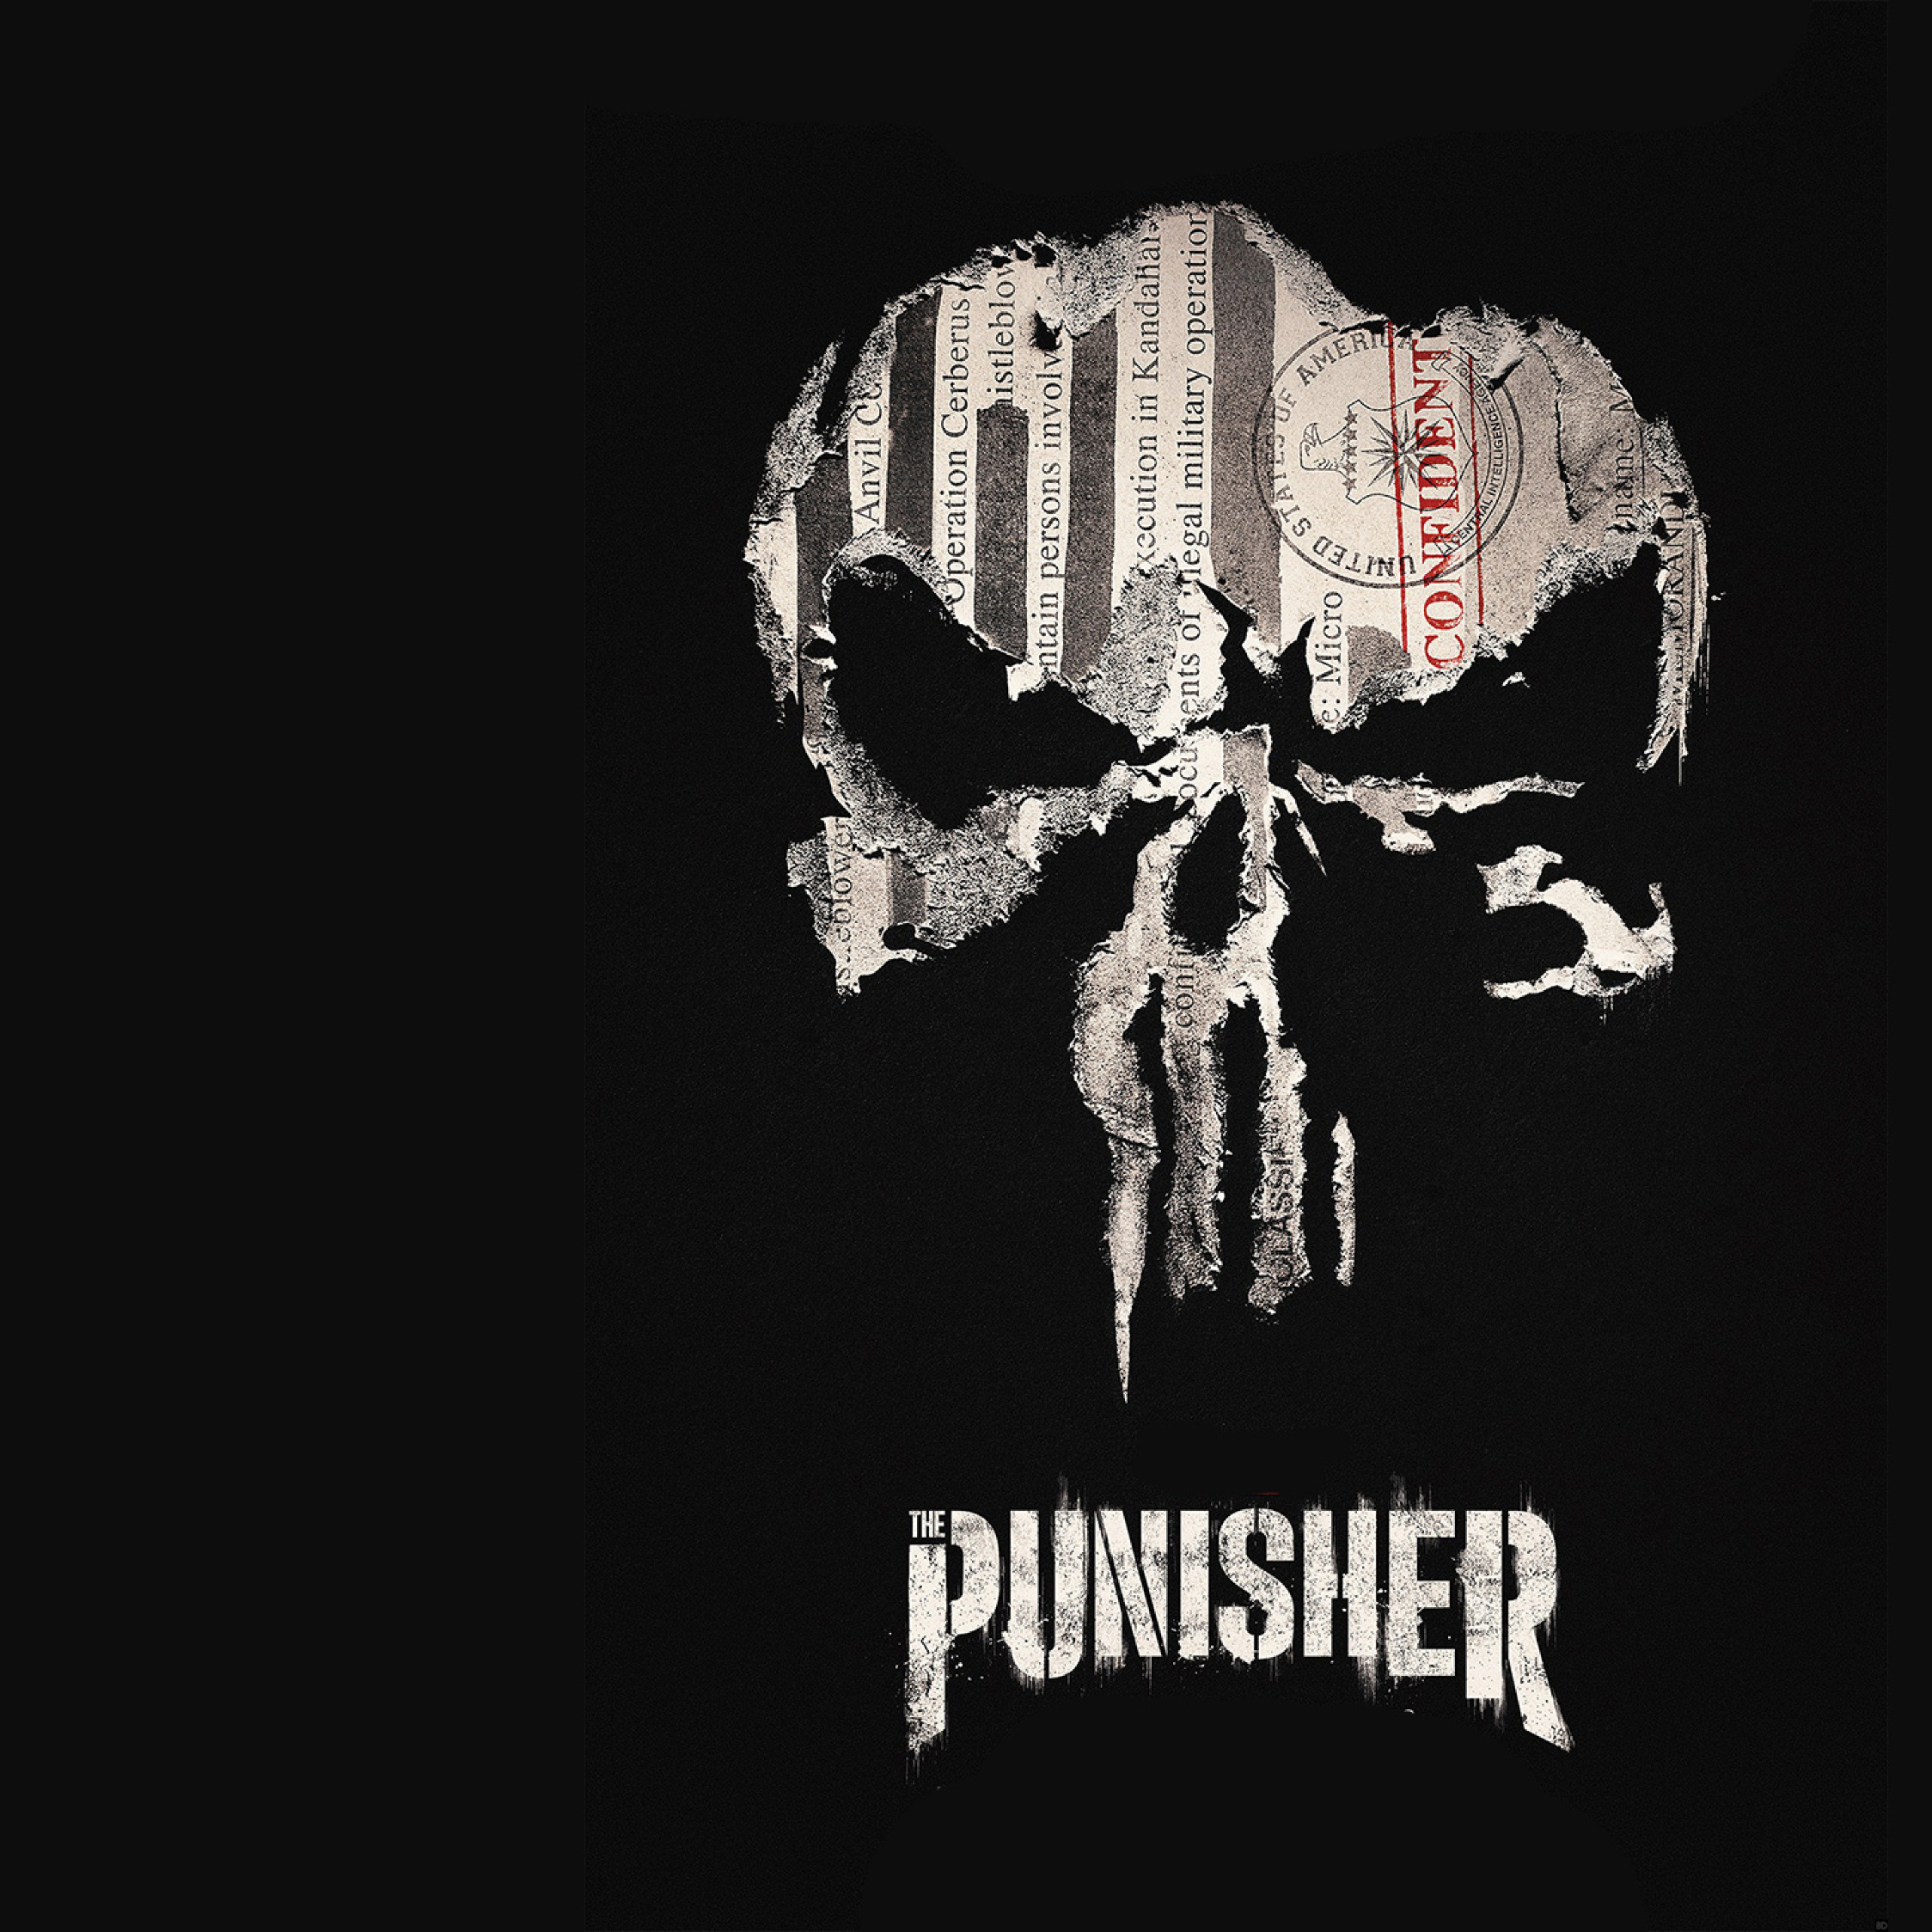 Beautiful Wallpaper Marvel Ipad Mini - punisher-marvel_59159_2248x2248  2018_362613.jpg